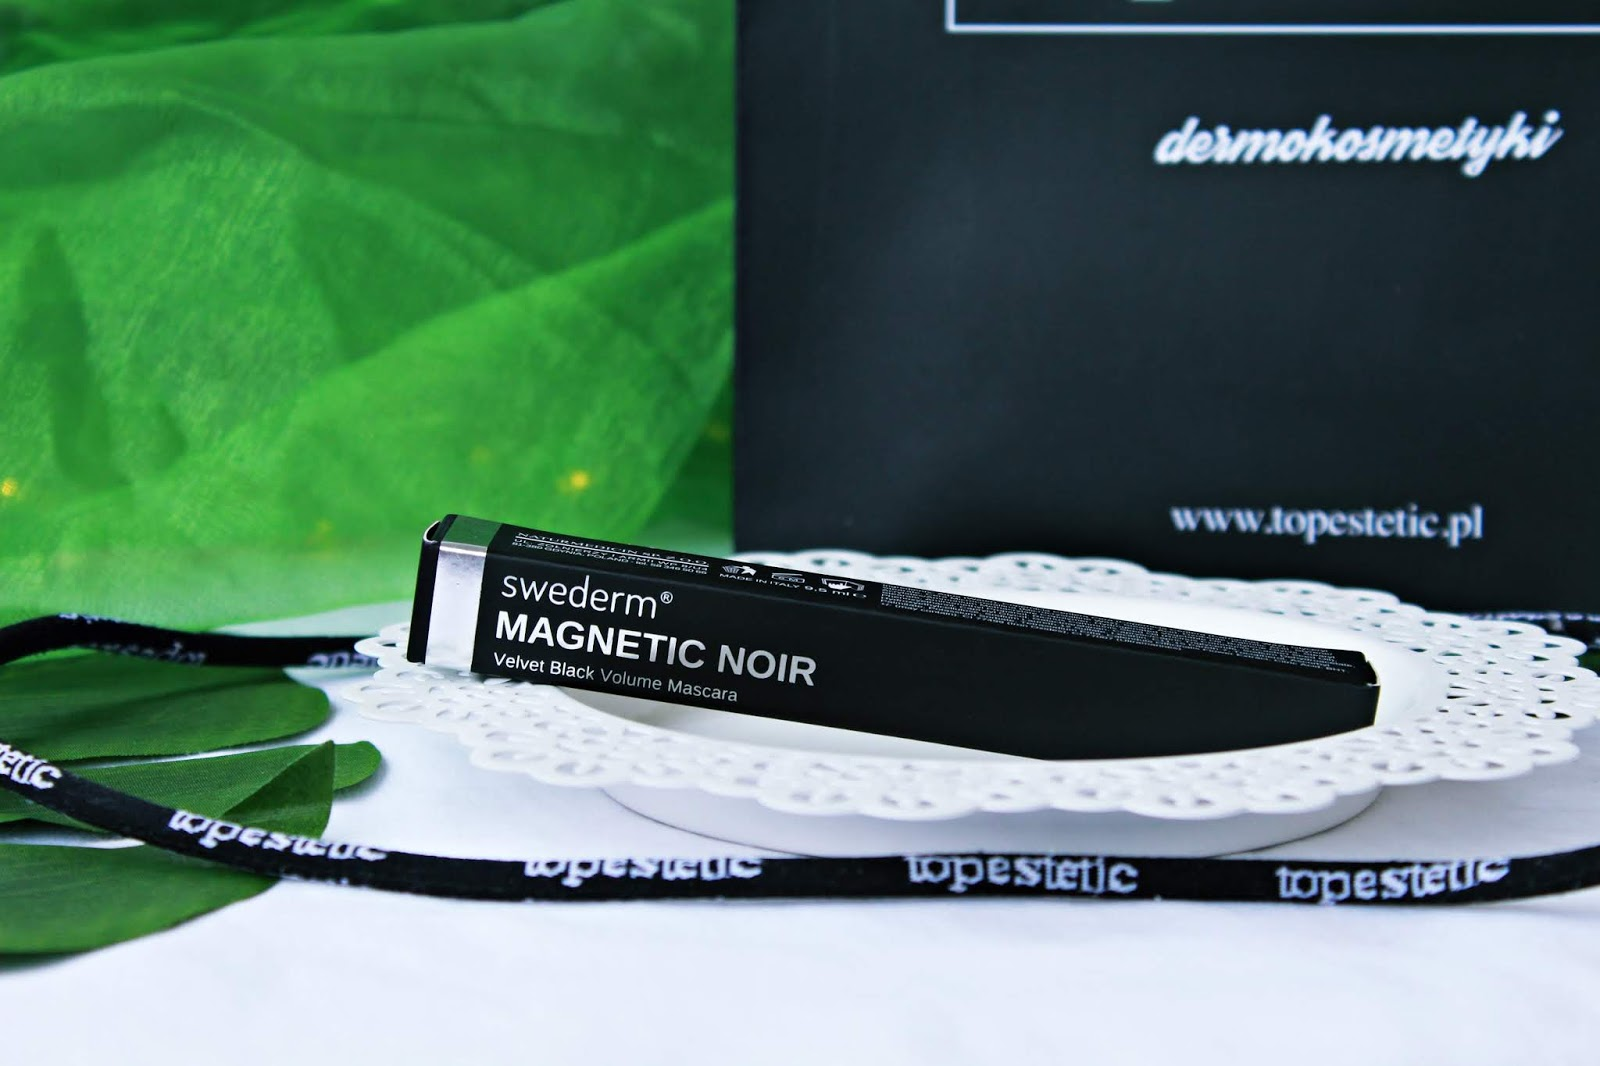 swederm Magnetic Noir Mascara